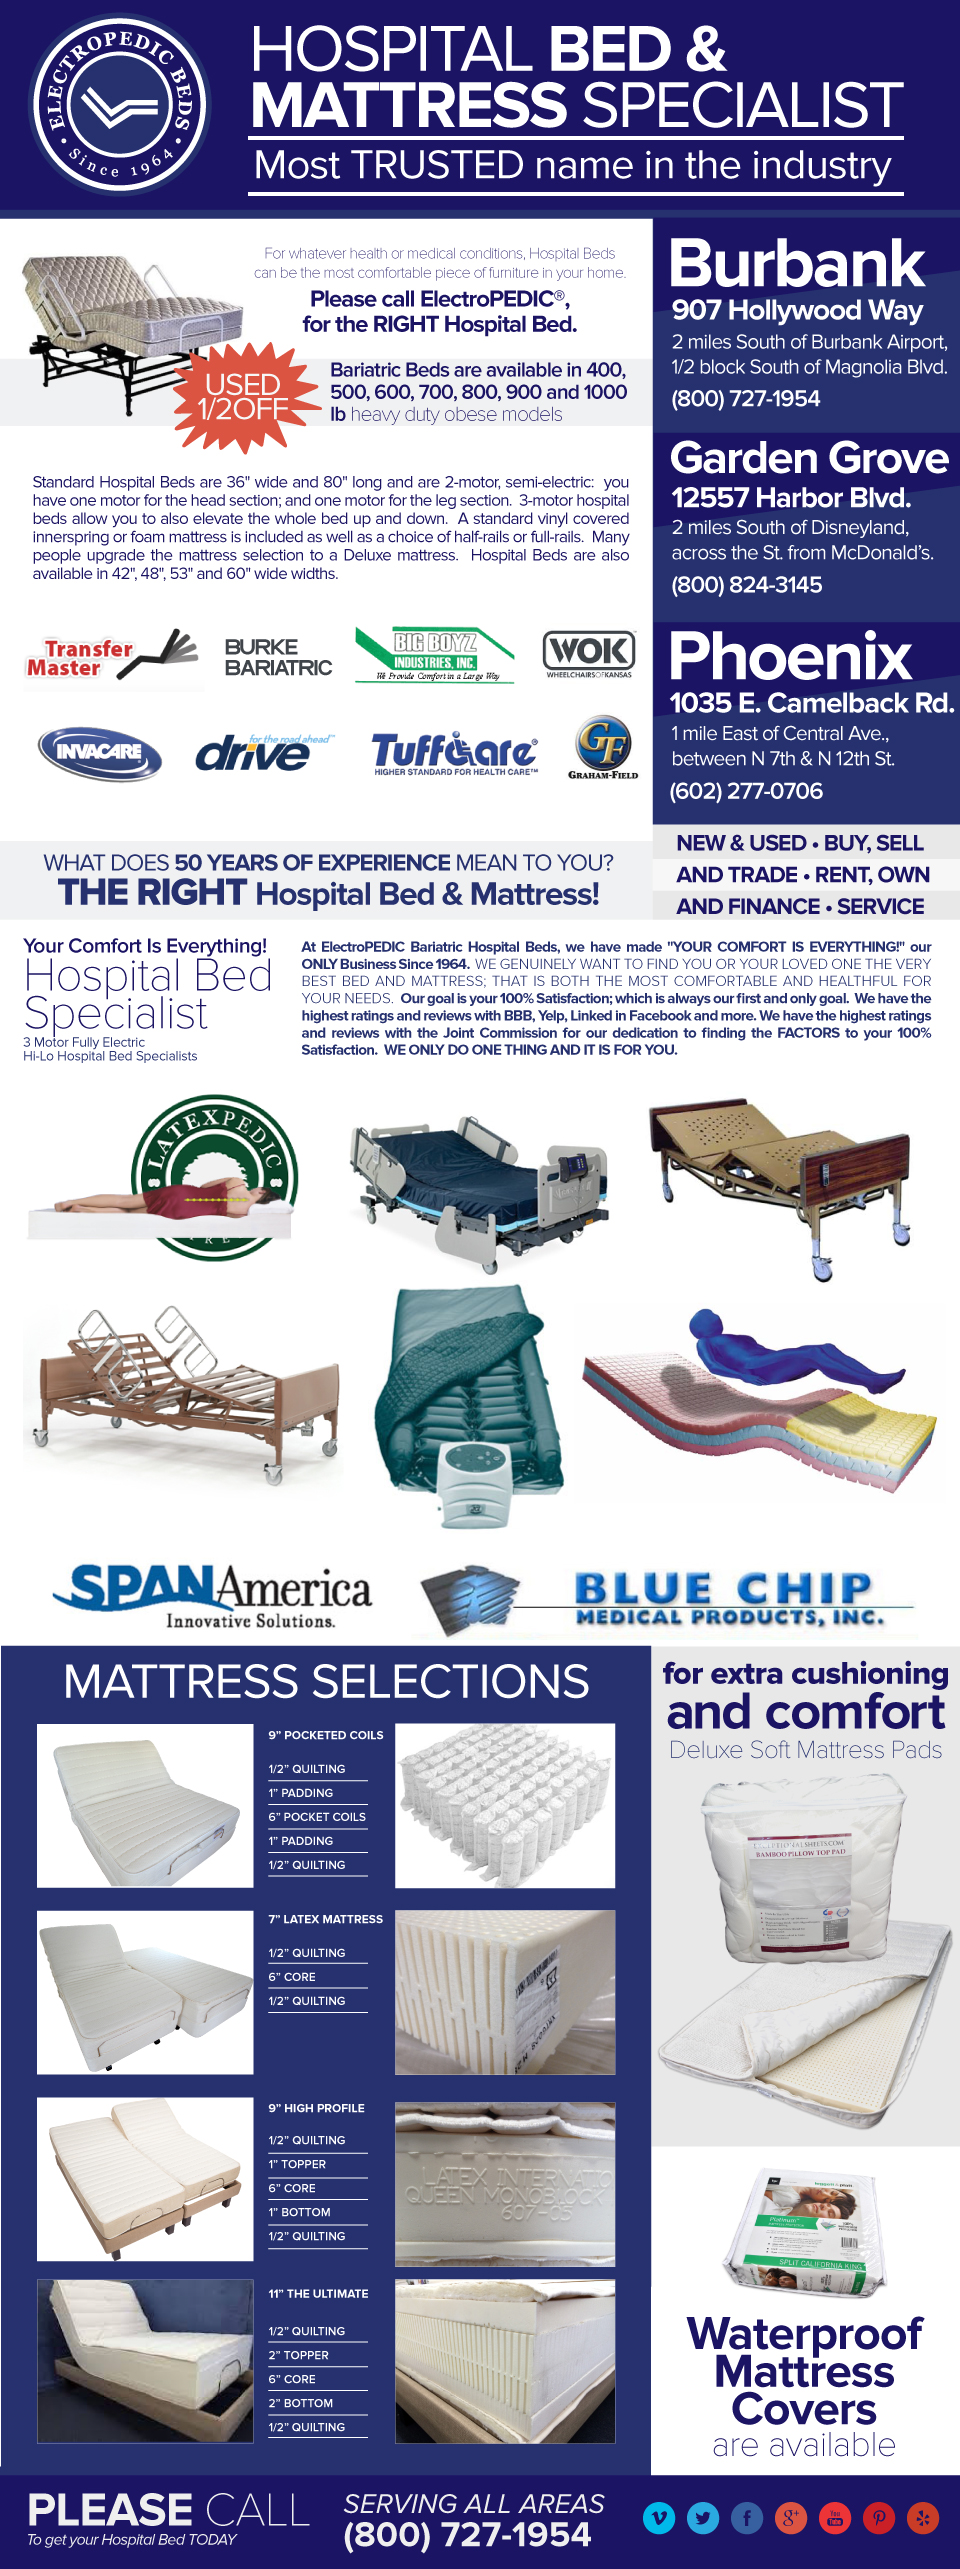 GRAHAM FIELD LUMEX PATRIOT HOSPITAL BED AUTHORIZED DEALER